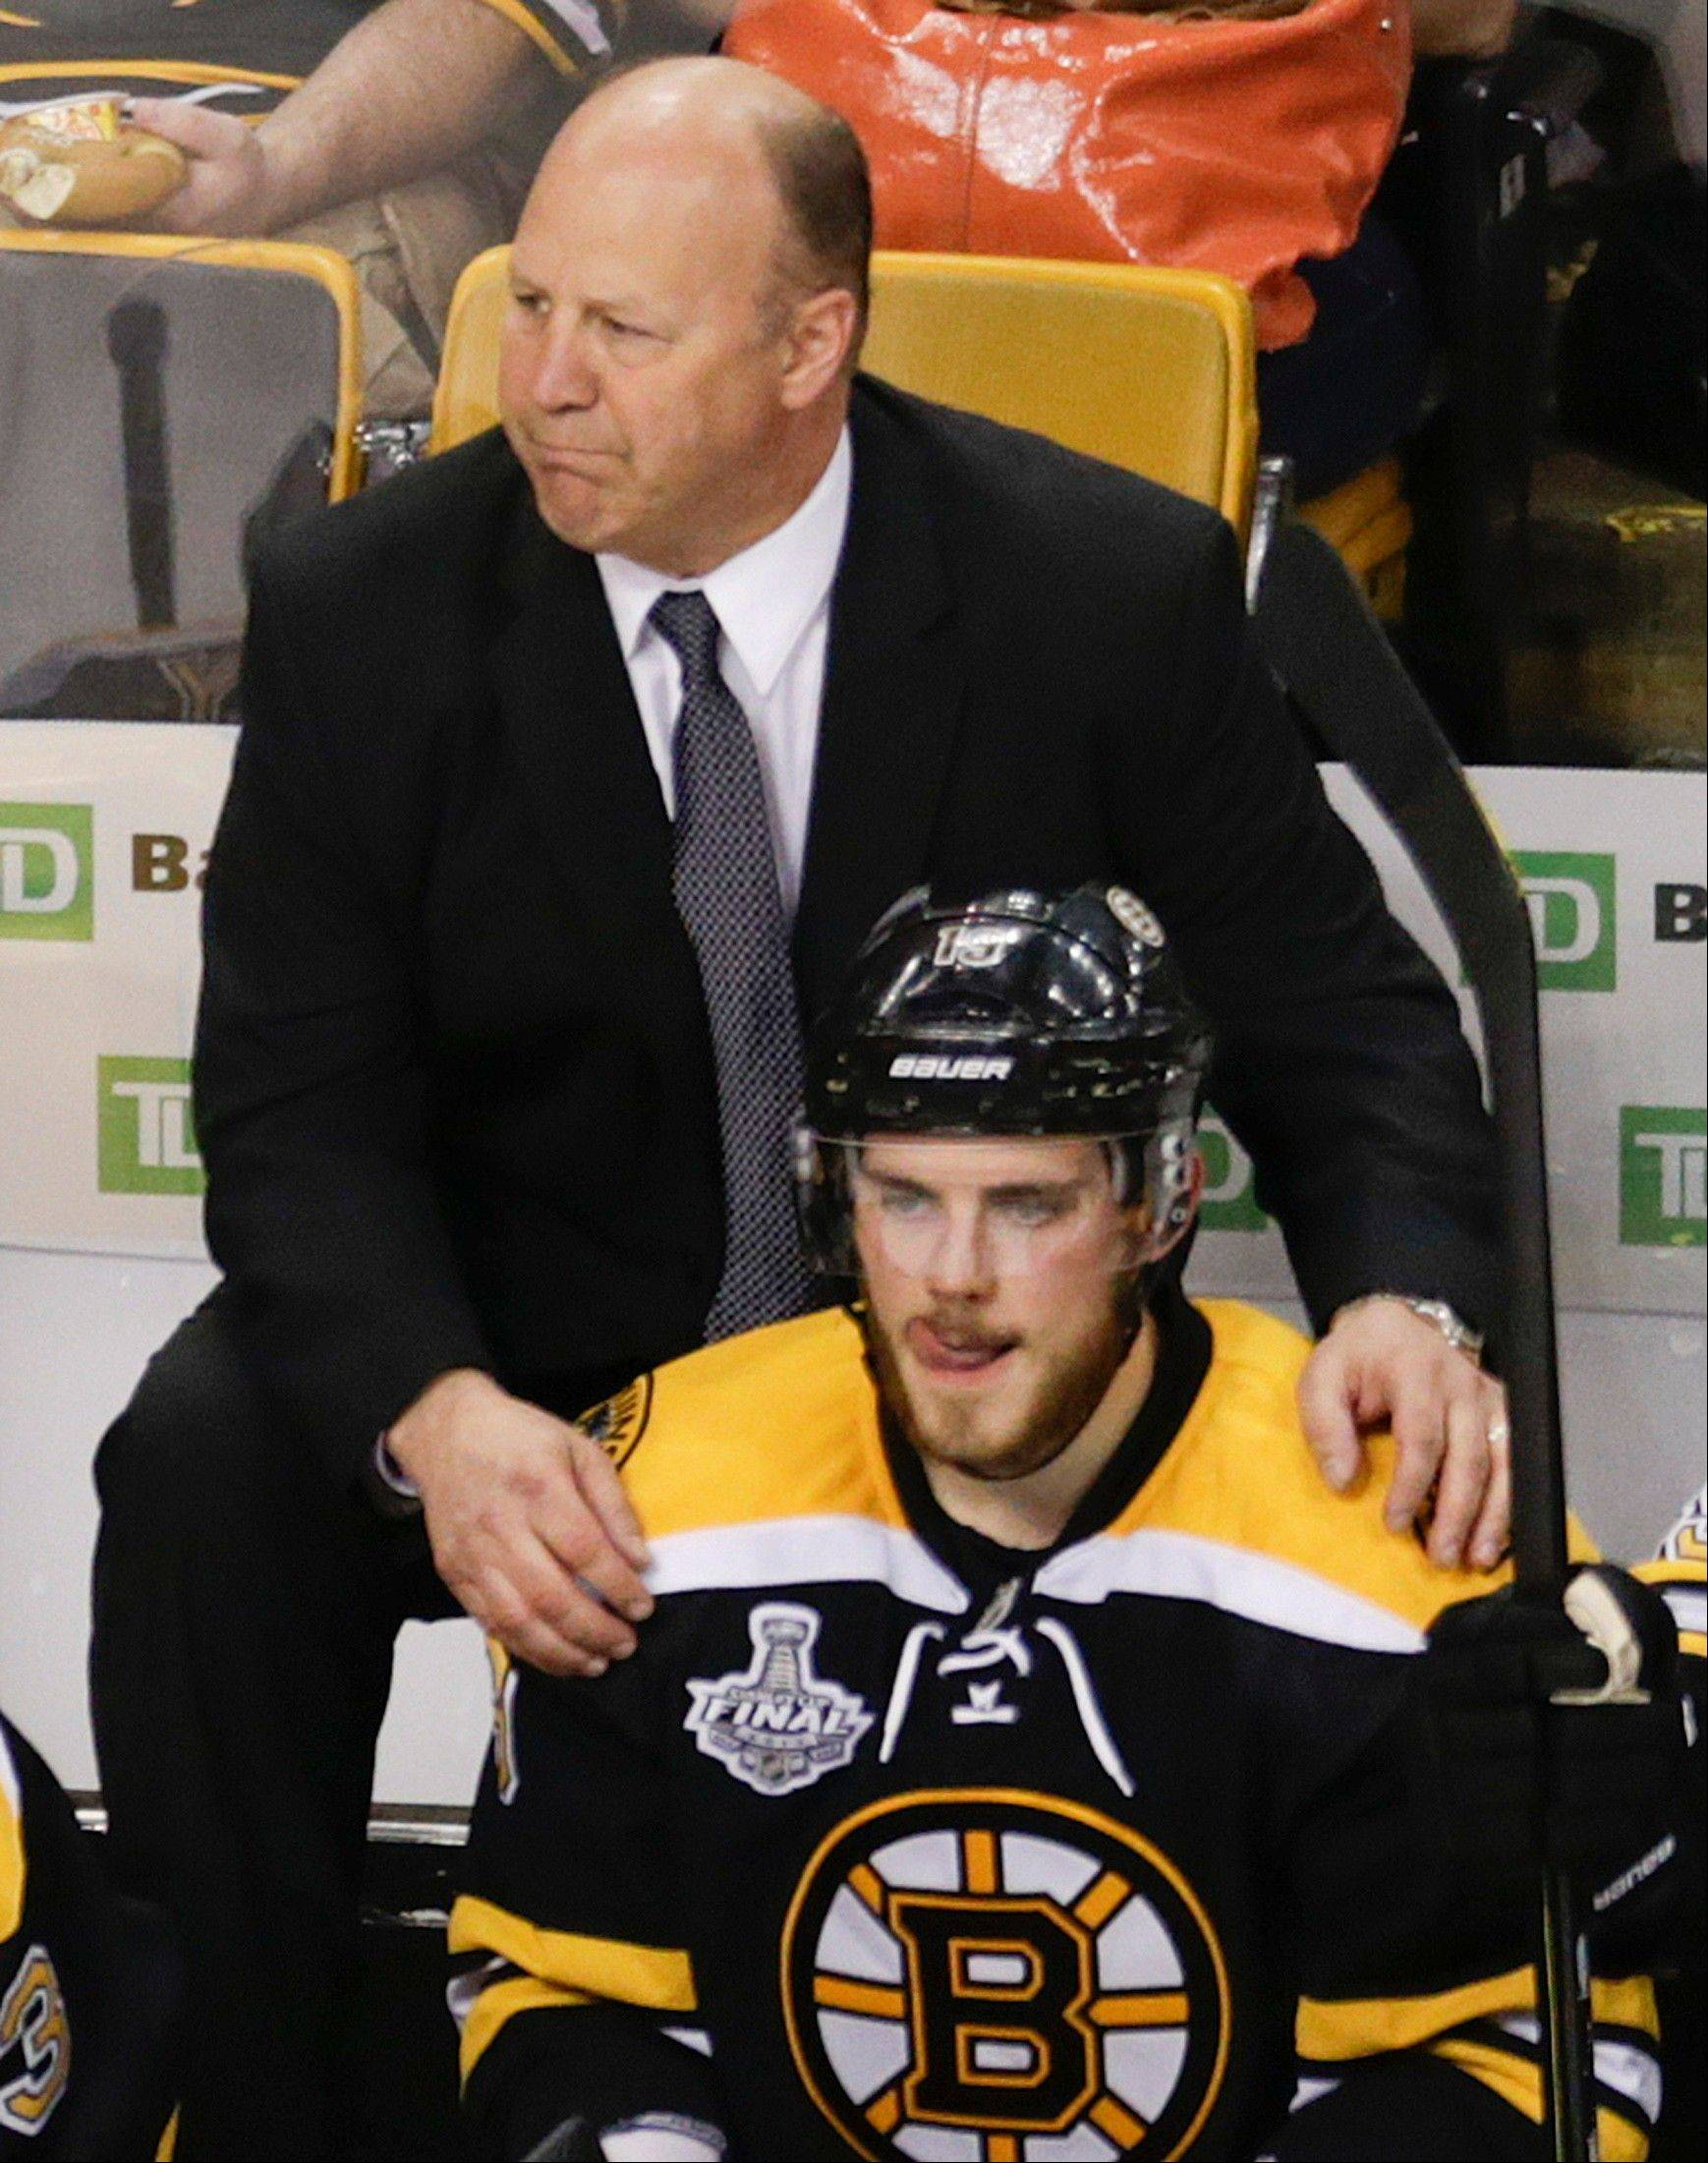 Bruins coach Claude Julien encourages center Tyler Seguin during the second period of Game 4 of the Stanley Cup Final against the Hawks on Wednesday in Boston.